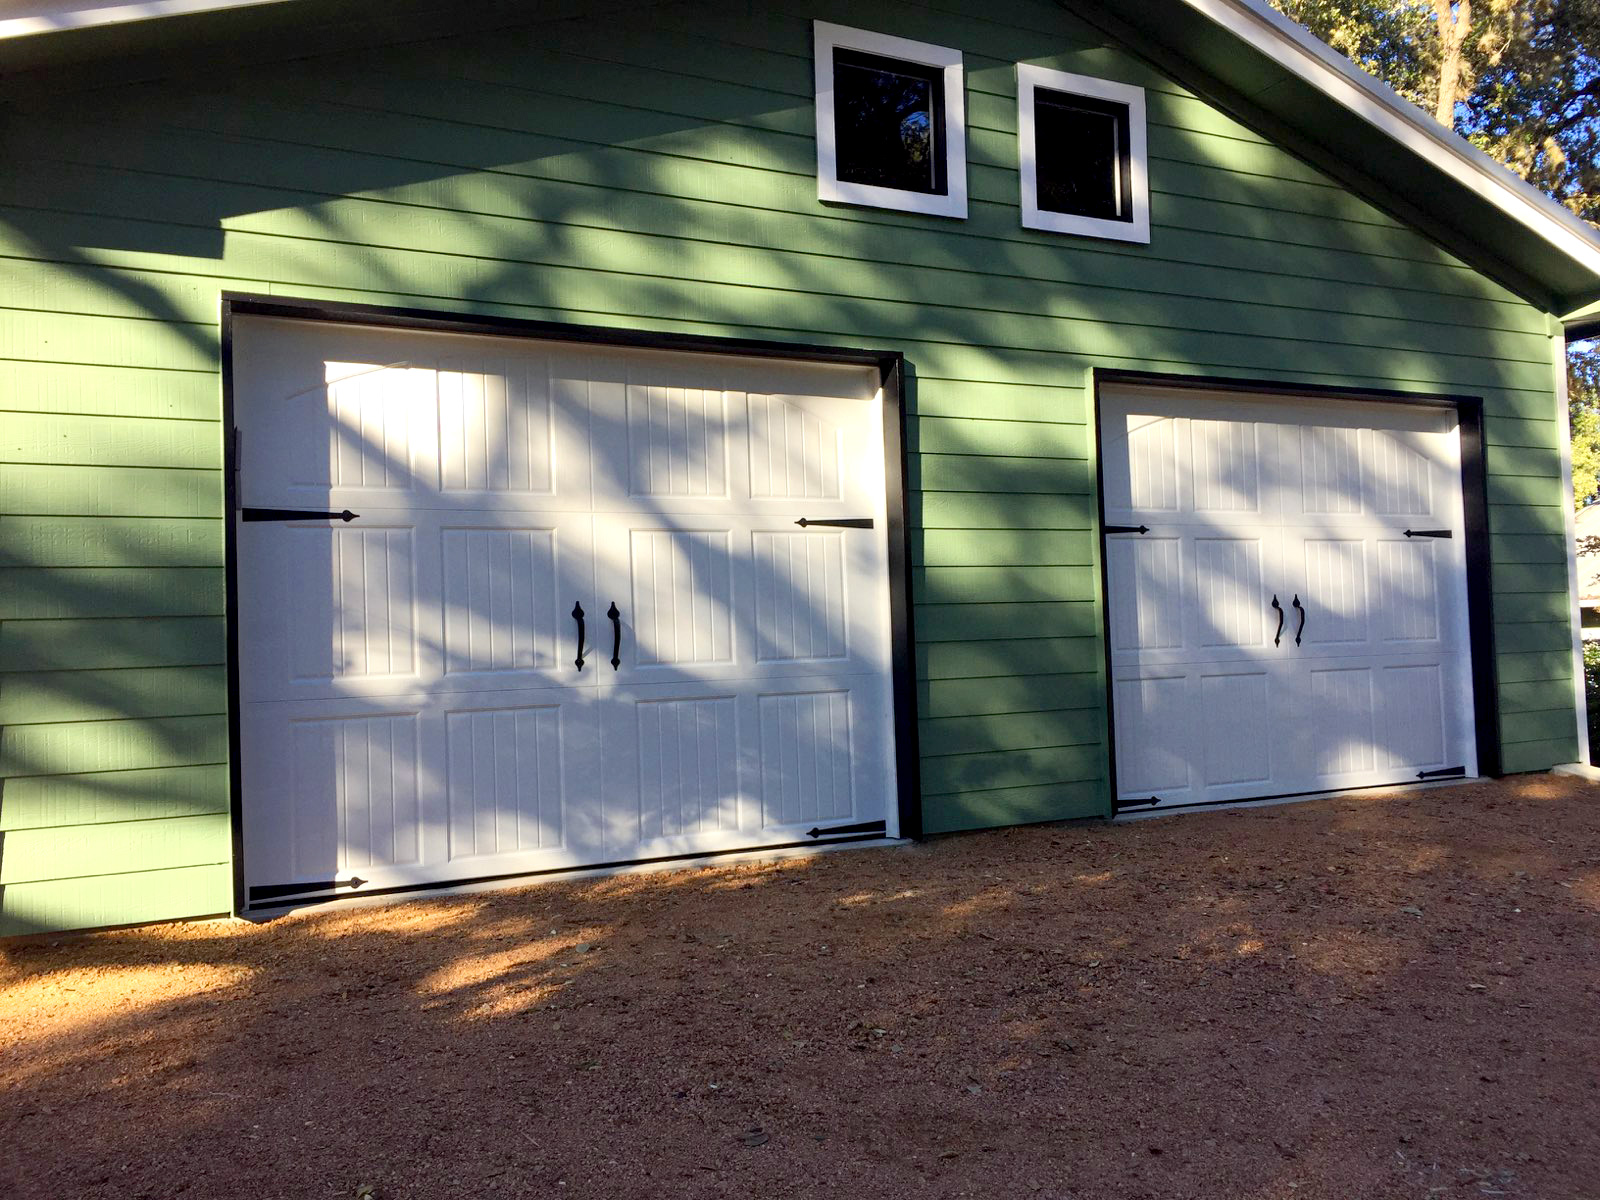 Good Austin Overhead Garage Door Sales Repair. U201c